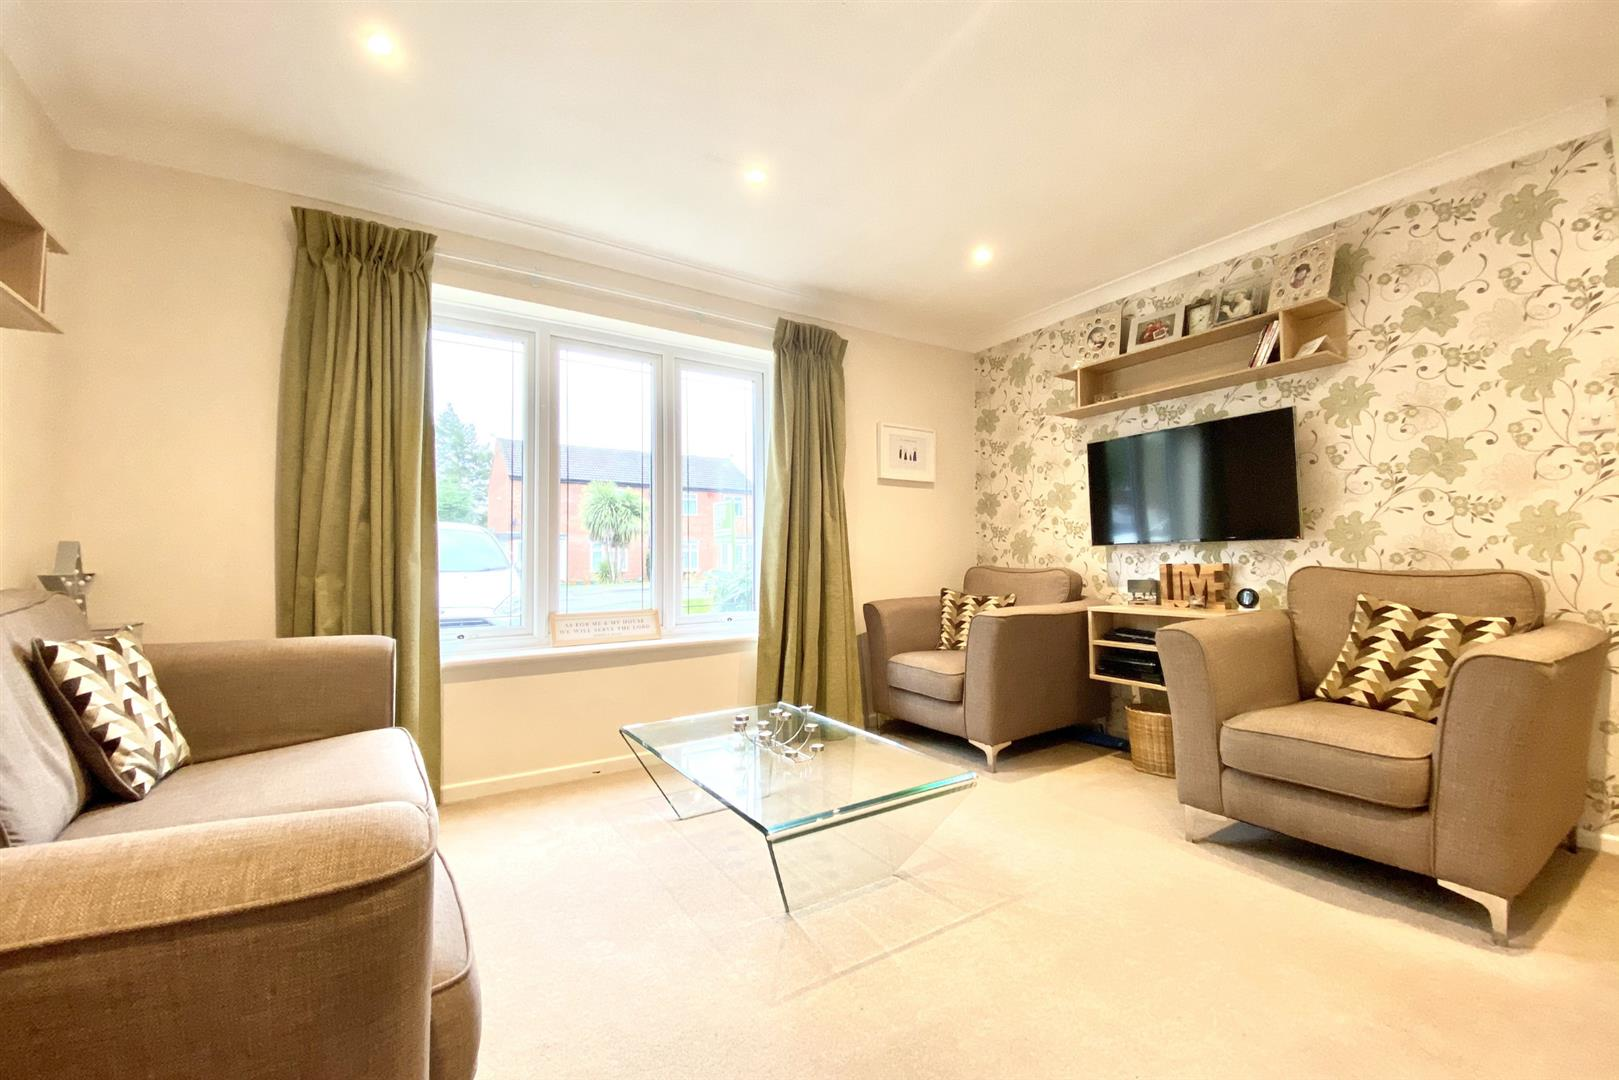 3 bed end of terrace for sale in Winnersh  - Property Image 3